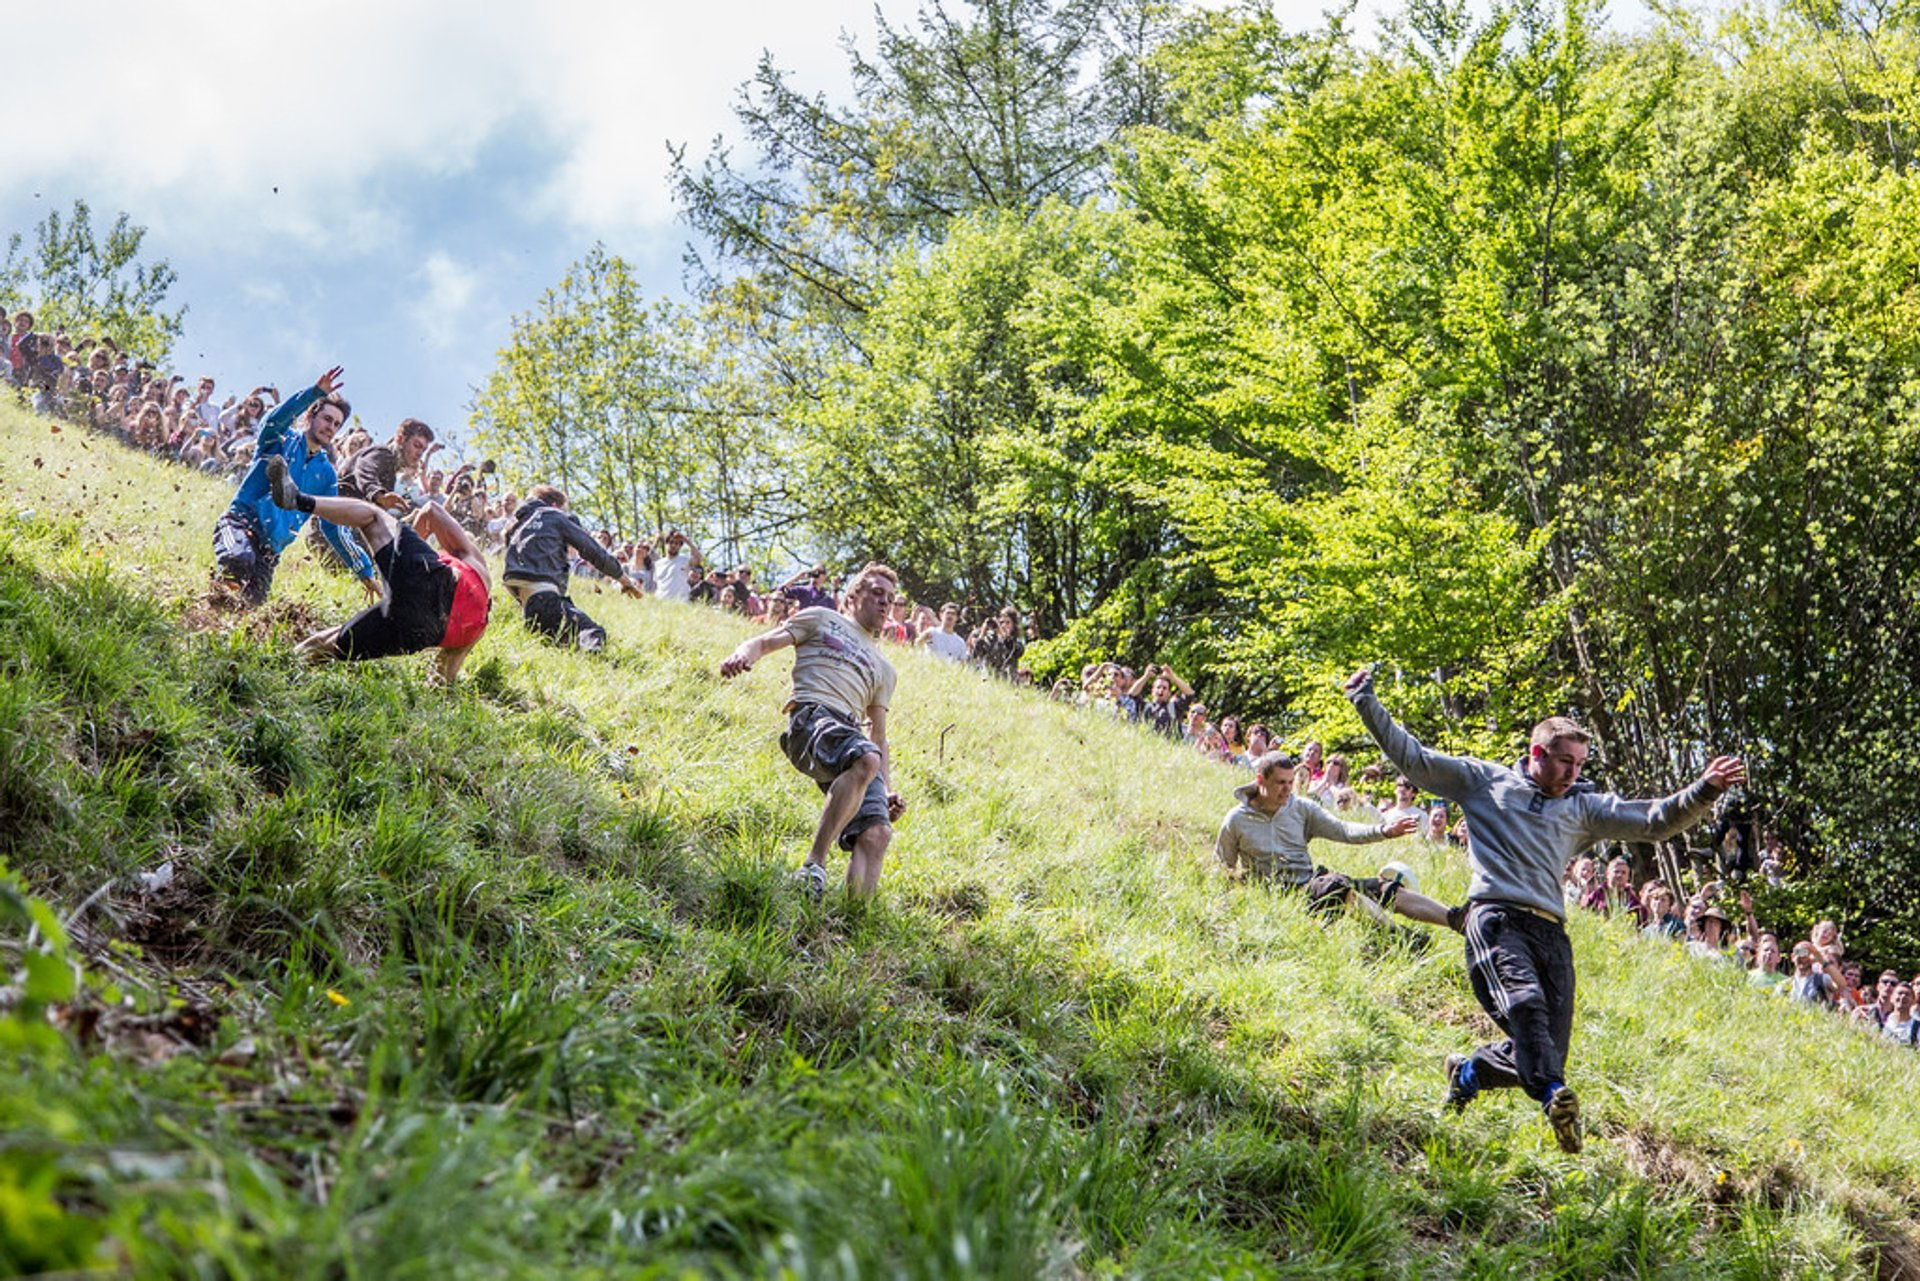 Cooper's Hill Cheese-Rolling and Wake in England 2019 - Best Time